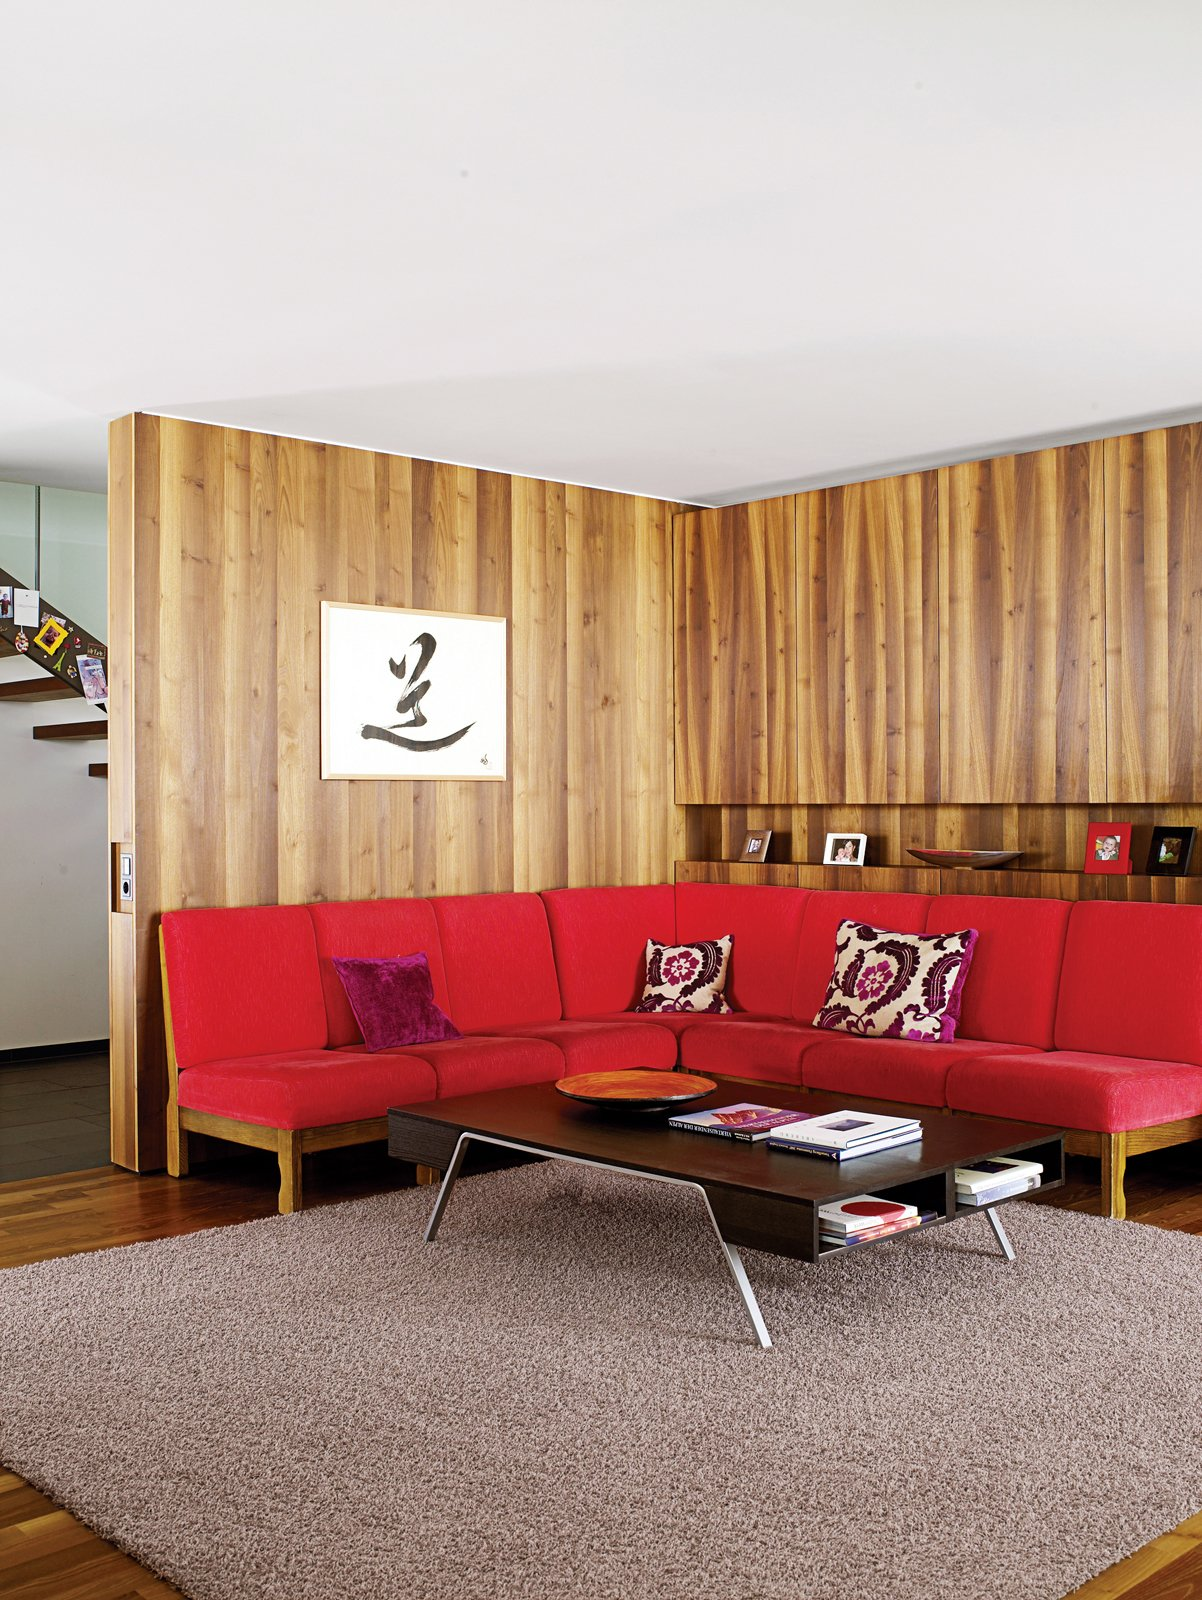 Living Room, Sofa, Coffee Tables, and Dark Hardwood Floor The red sofa in the living room is a 1960s piece originally owned by Strolz's parents.  Photo 20 of 21 in Red, Red, and More Red! 20 Bold Interiors That Make a Statement from Snow Proofed Hillside Family Home in Austria